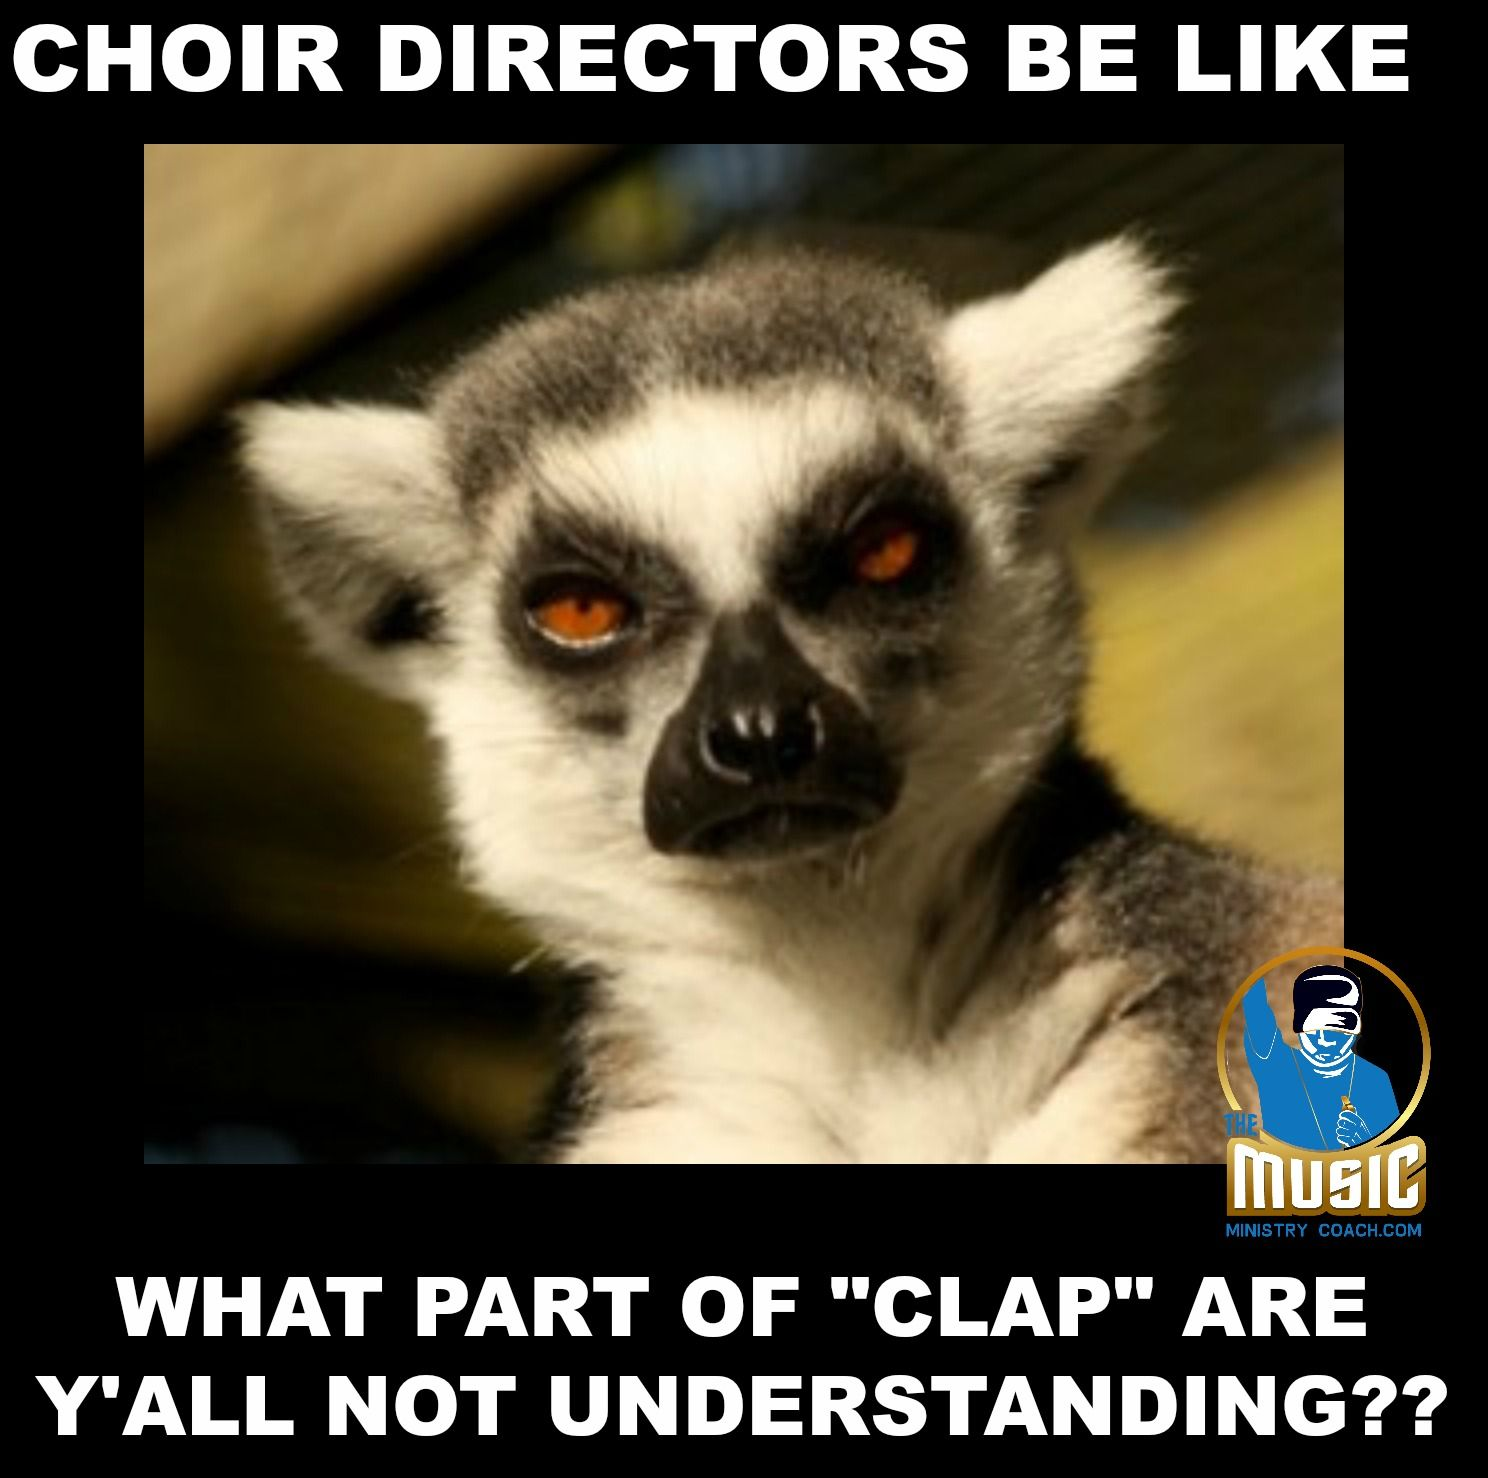 Choir directors be like... Music Ministry/ Church Memes